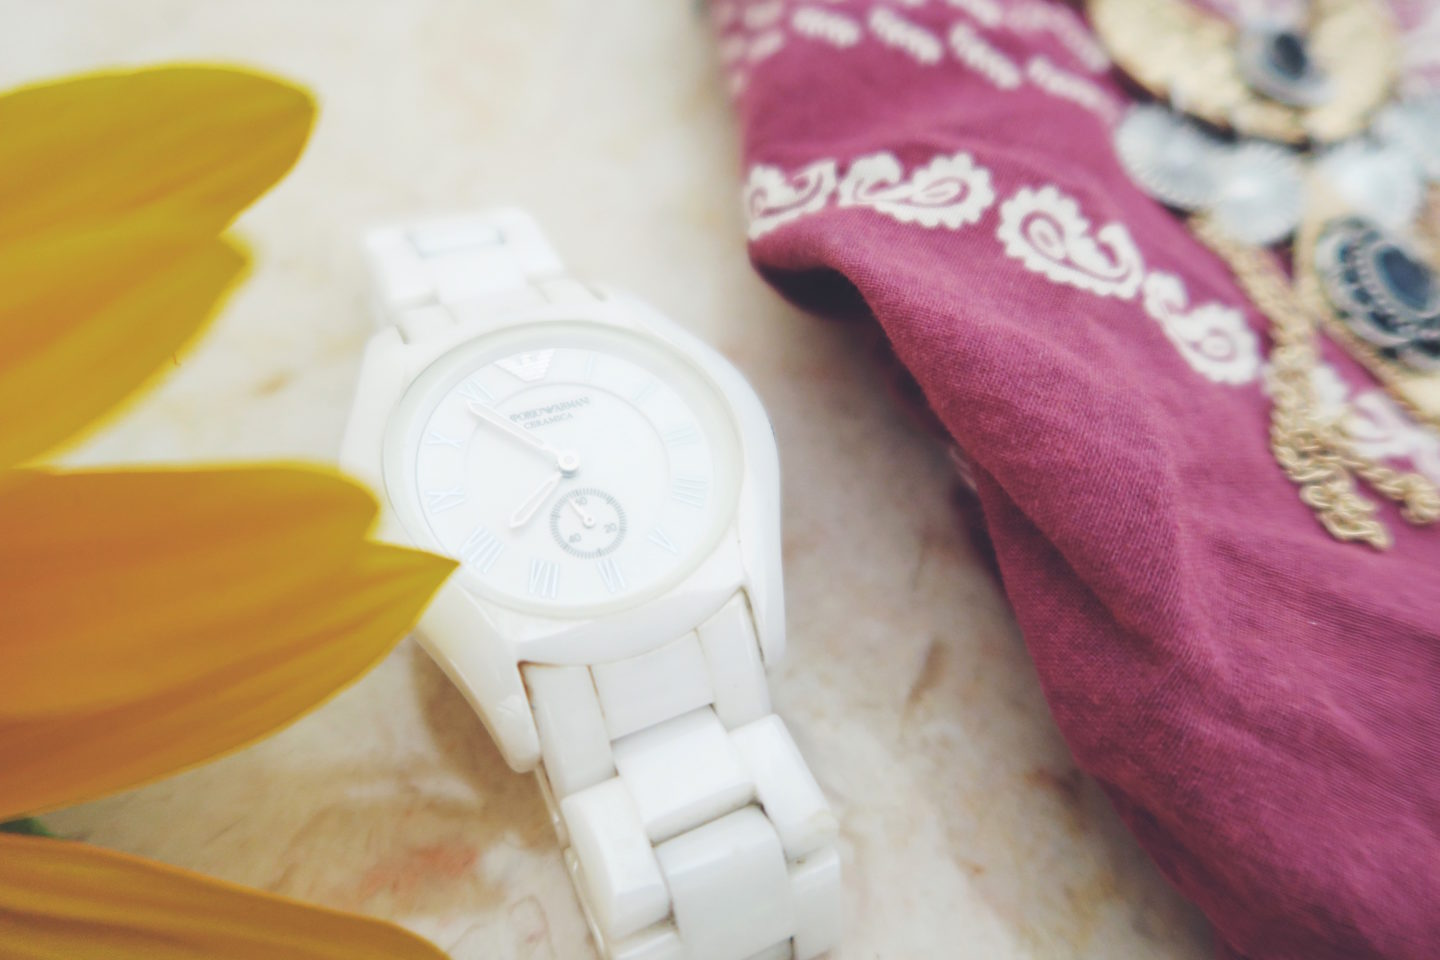 White Armani Watch - thecasualfree.com